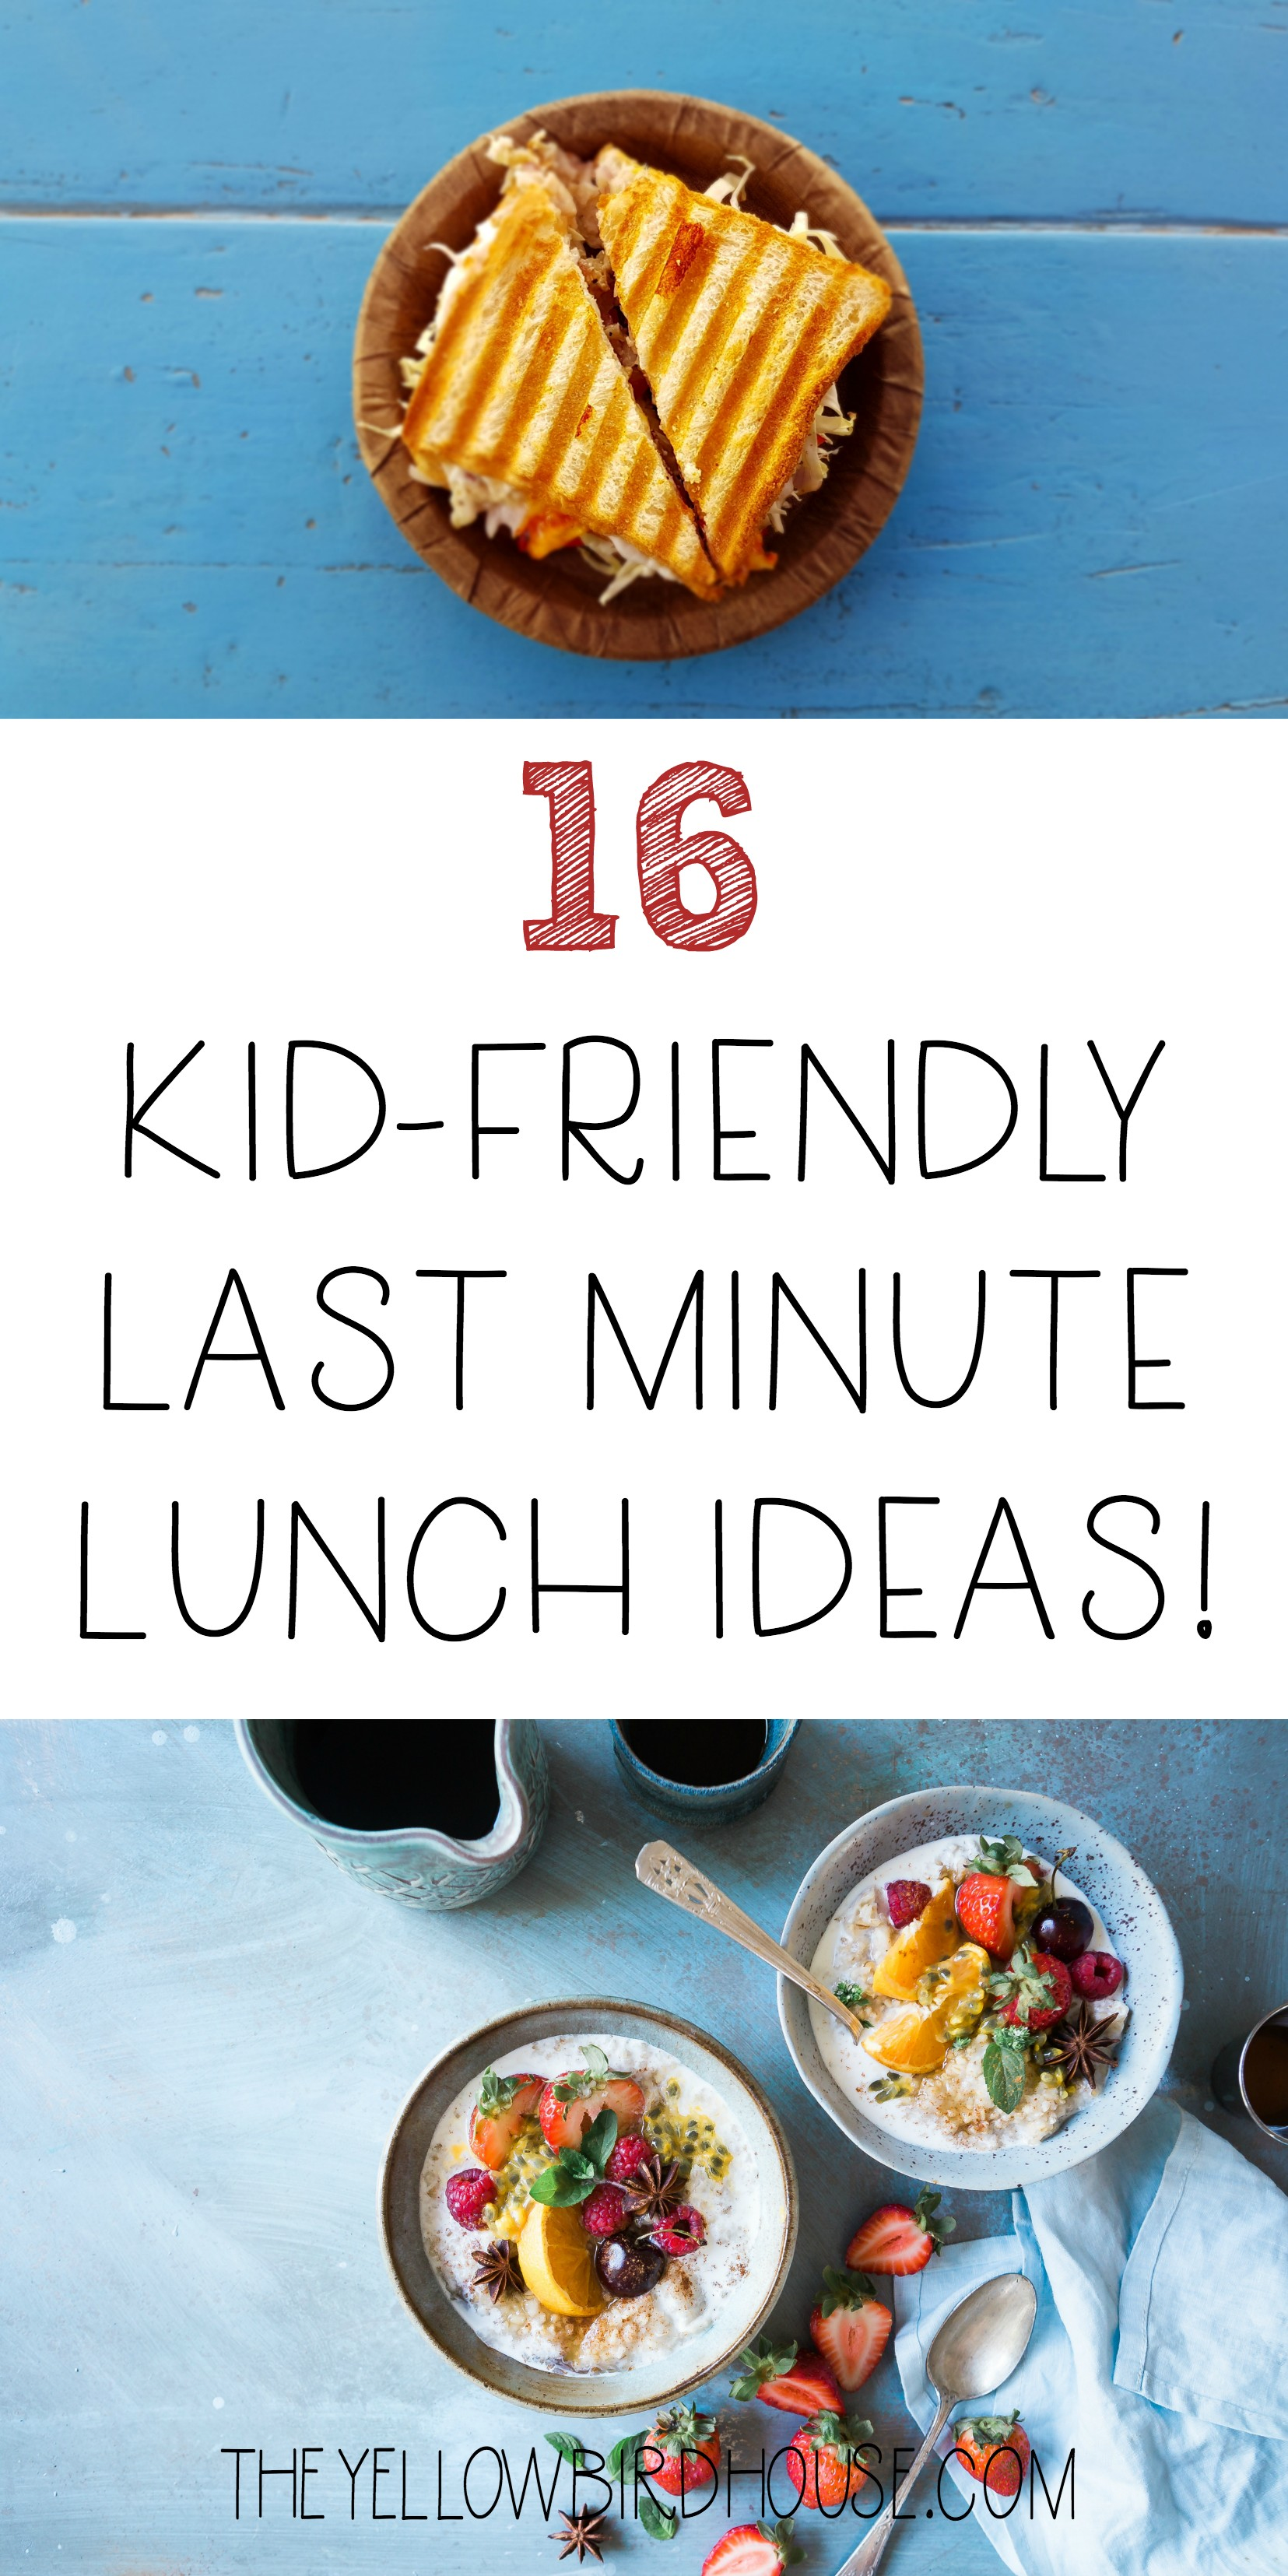 Do you often struggle coming up with lunch ideas that will suit your busy day and your child's tastes? Me too. Here is a list of kid-friendly lunch ideas that are healthful and quick to make. When lunch time hits we are often cranky and need some quick nutrition. These last minute lunch ideas will satisfy and fuel the rest of your day!